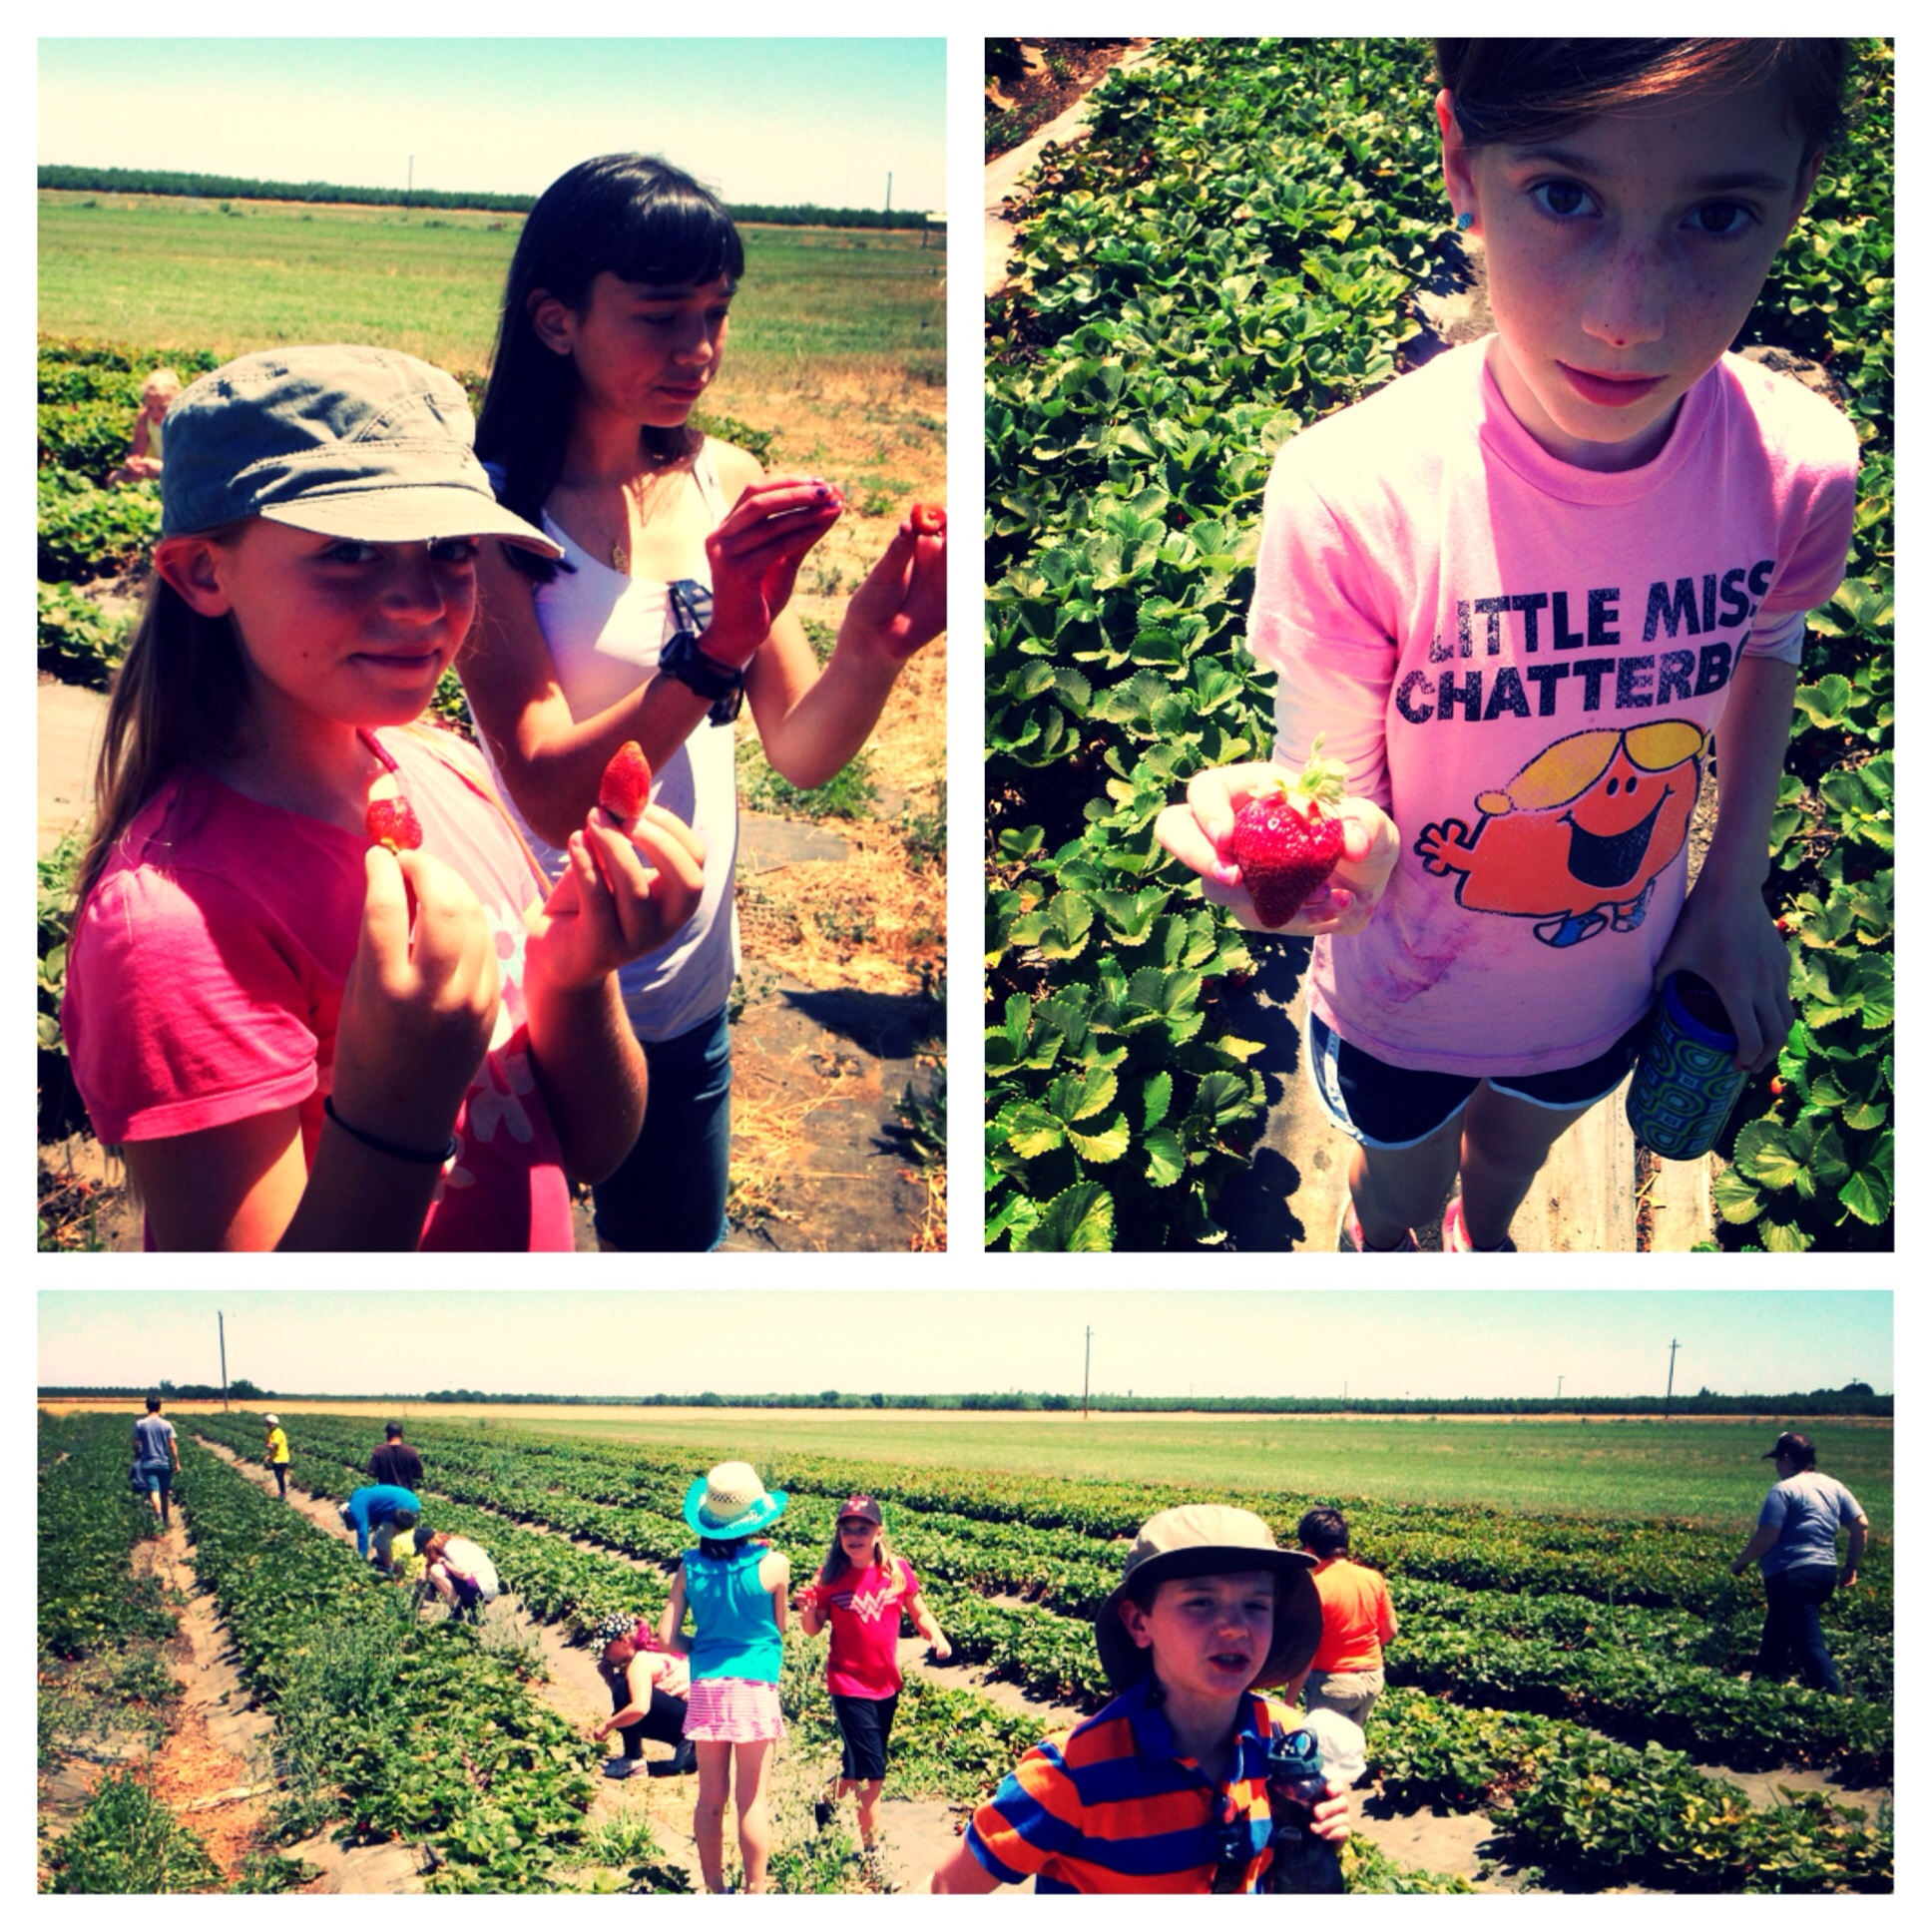 The campers found some of the freshest, juiciest strawberries I have ever seen.